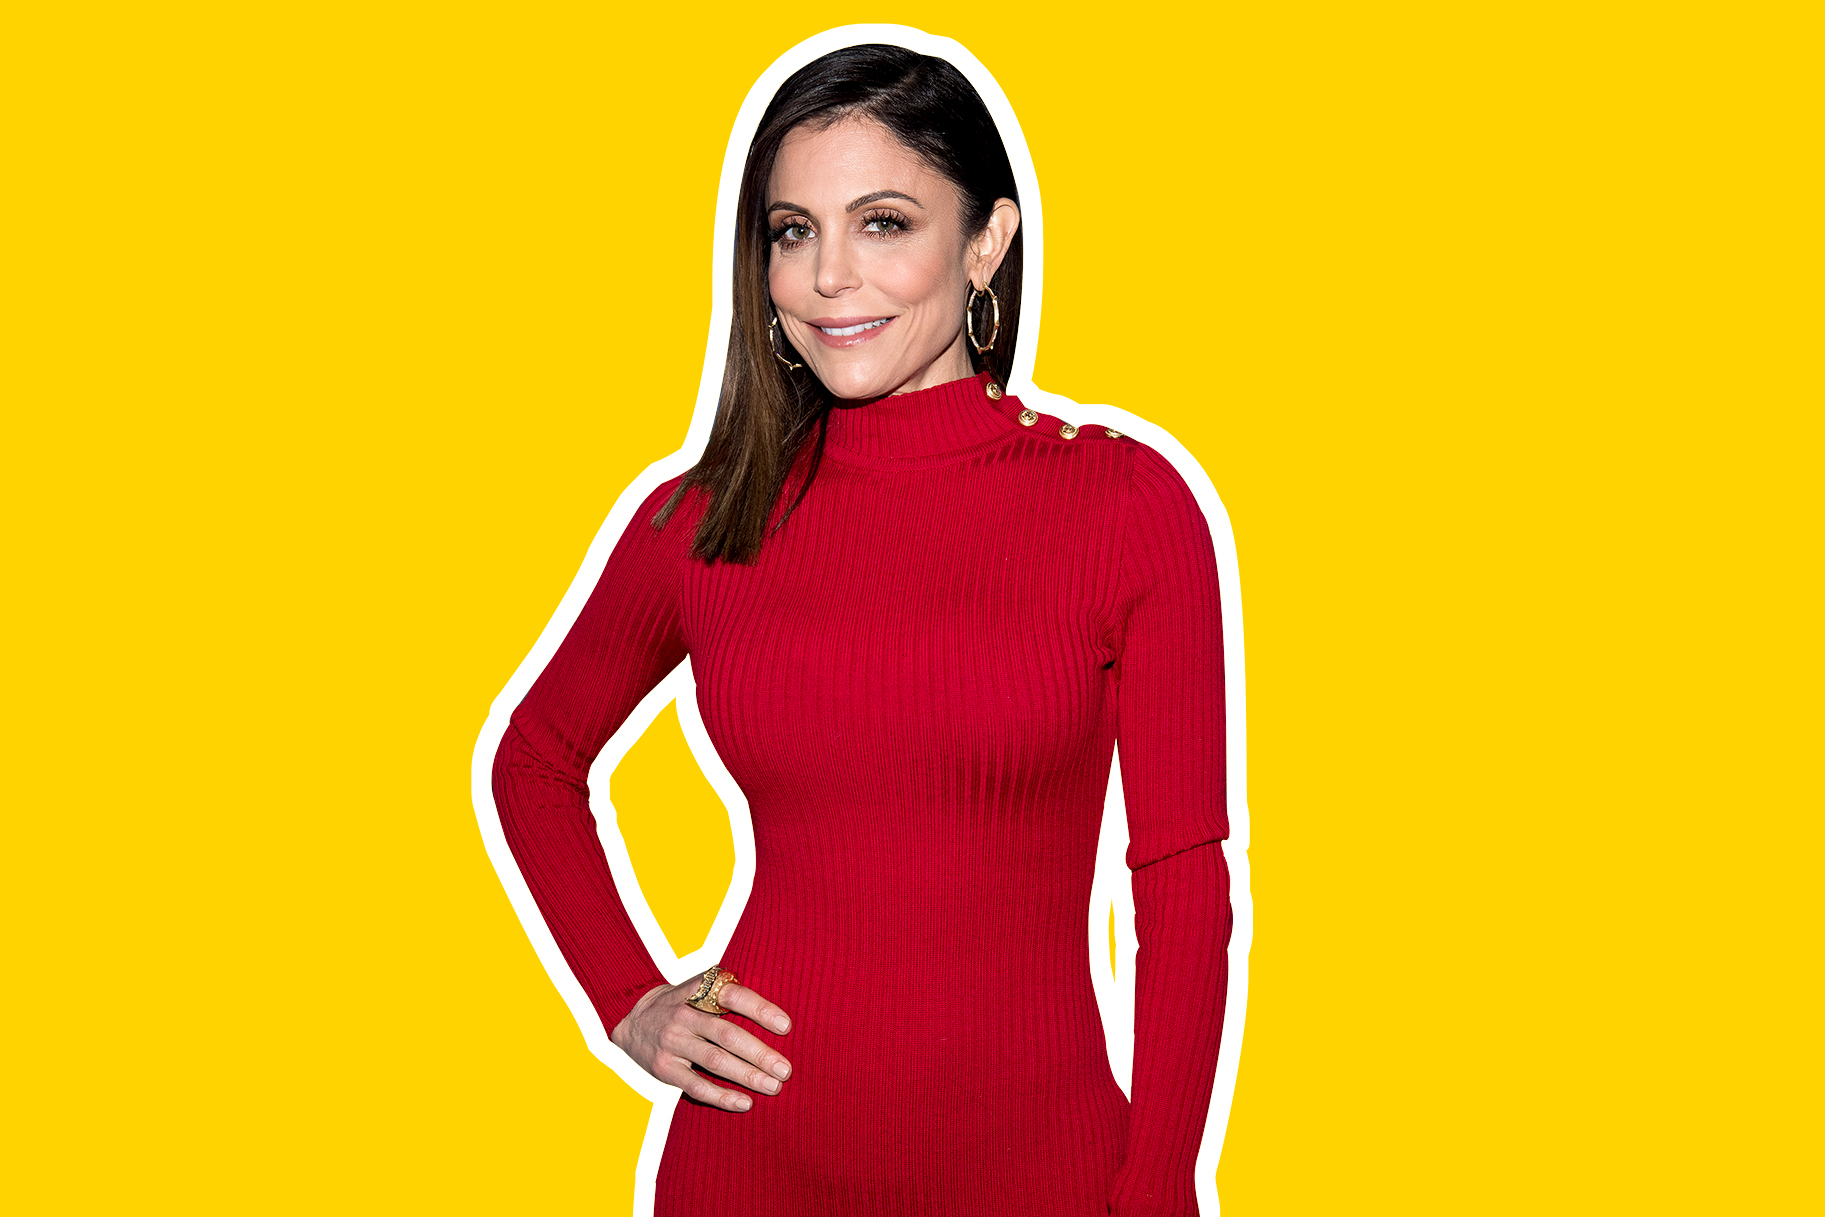 the-feast-bethenny-frankel-promote.jpg